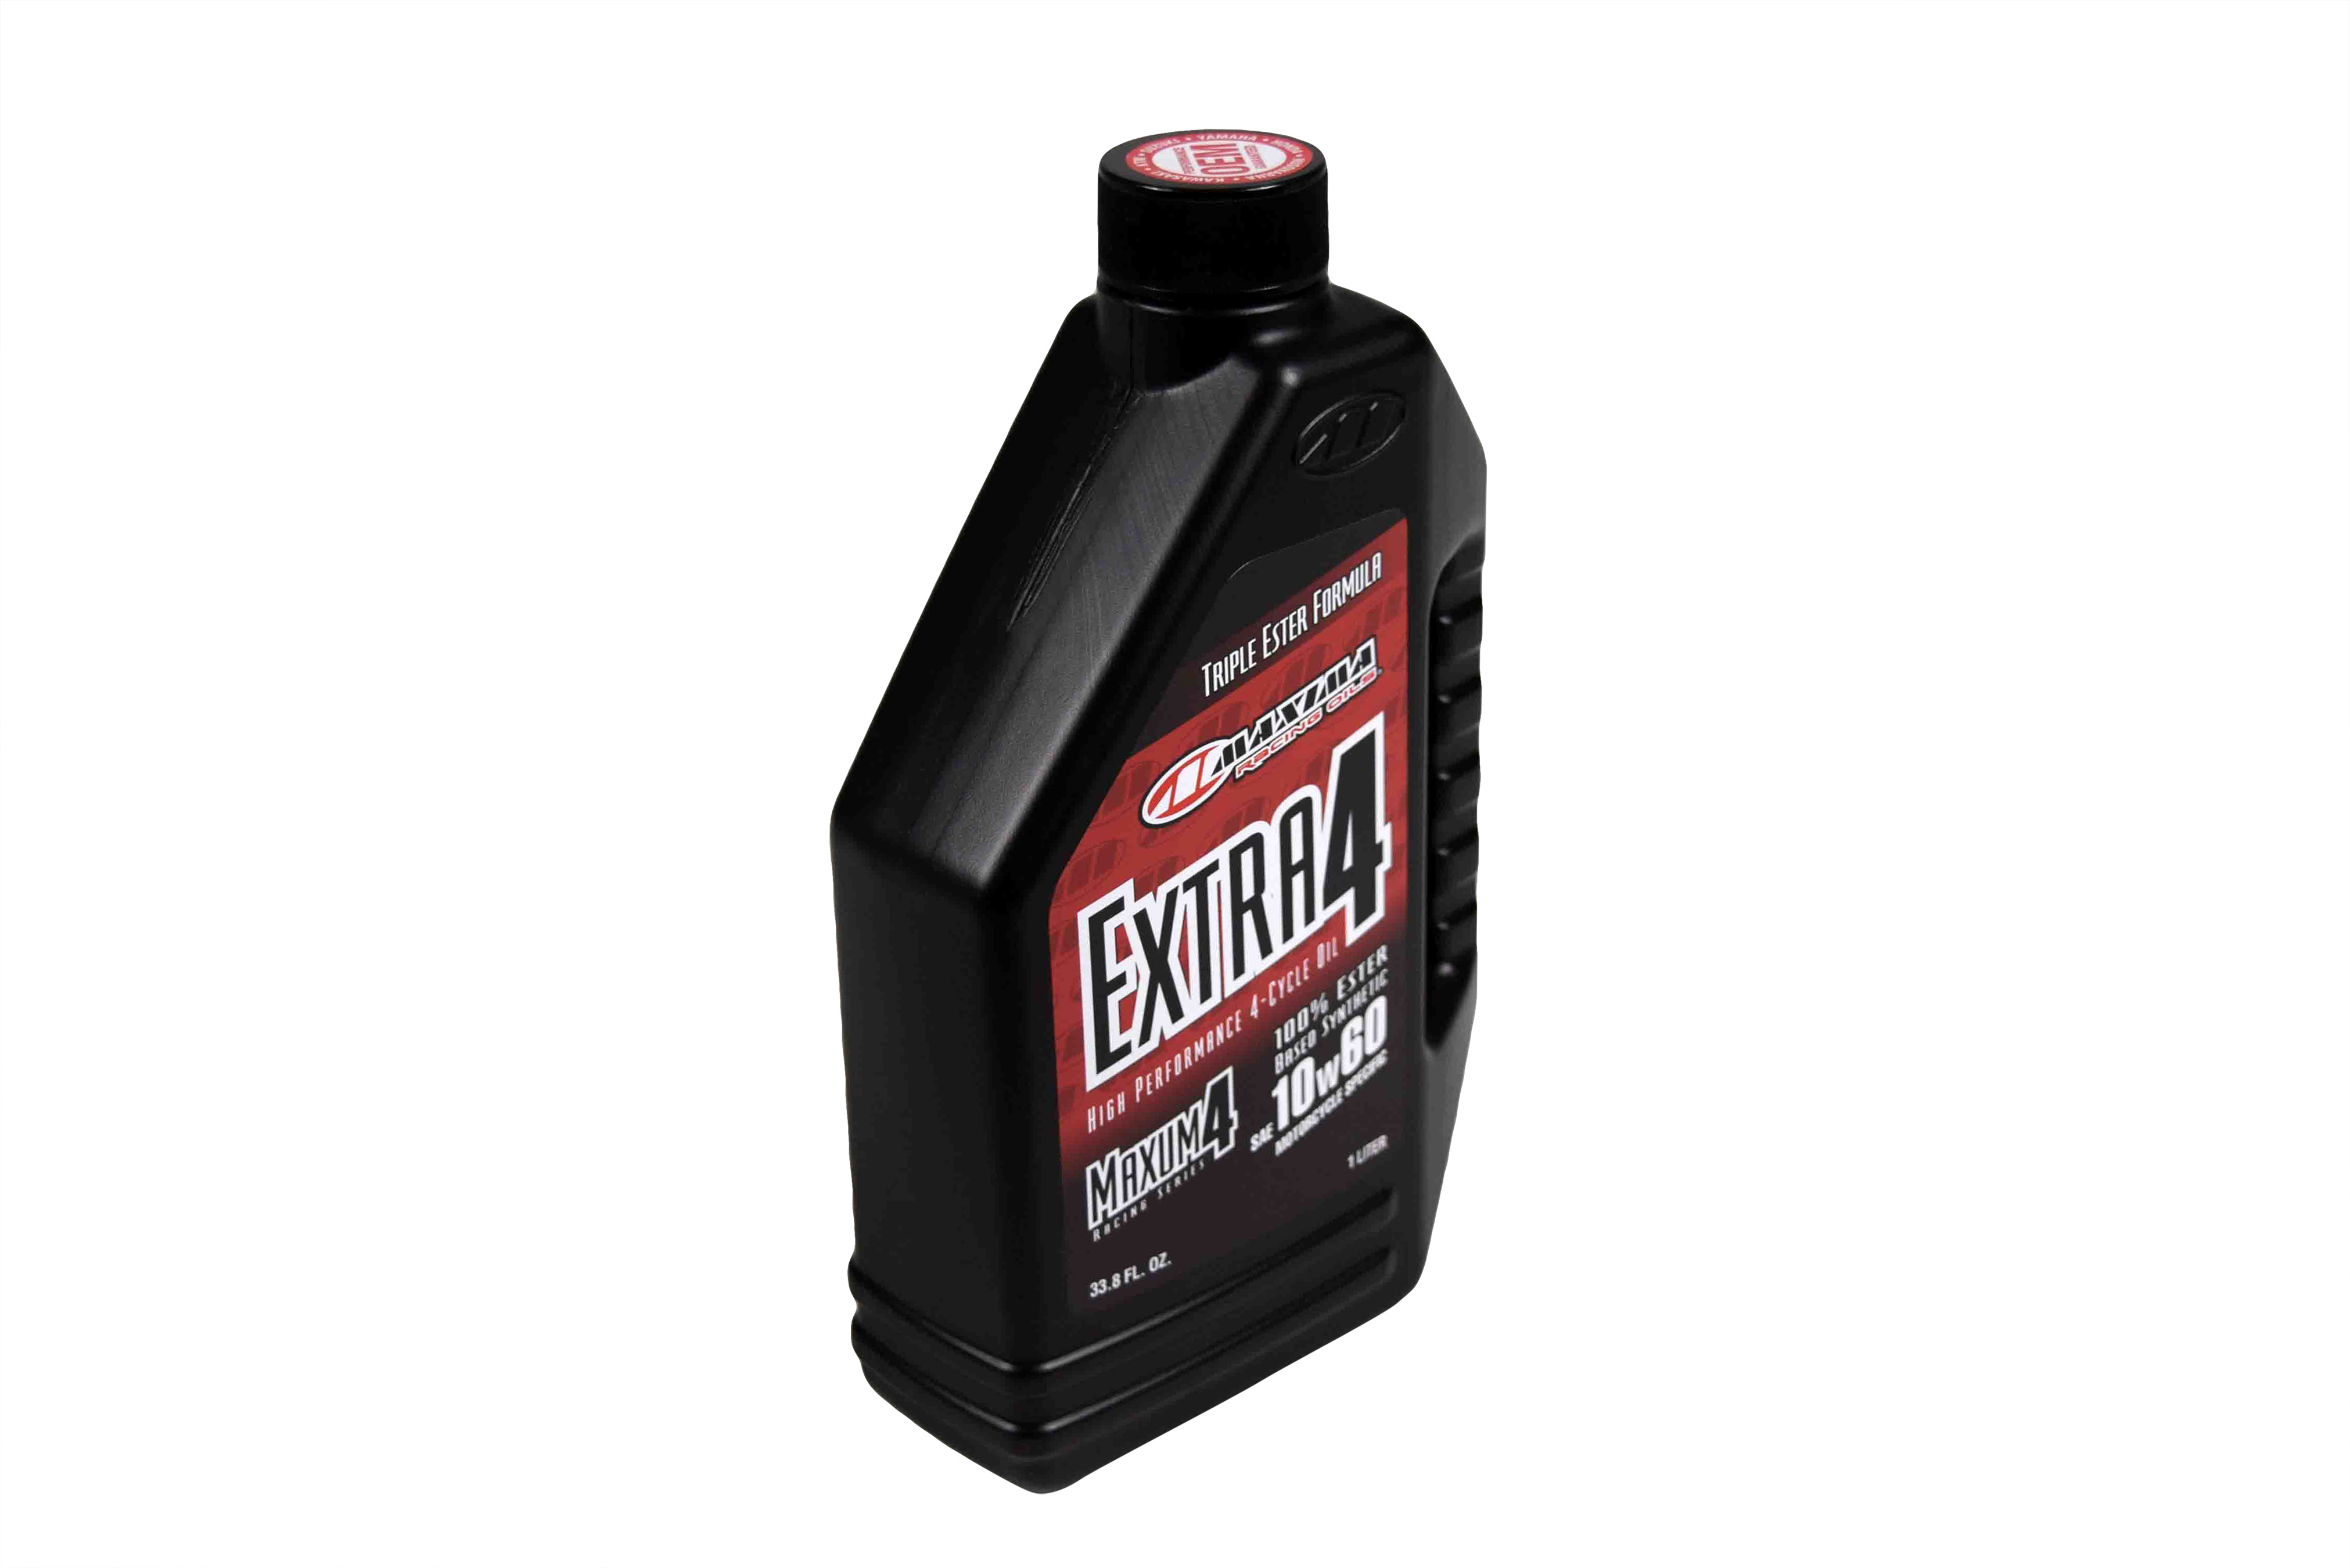 Maxima-30-30901-Extra4-10W-60-Synthetic-4T-Motorcycle-Engine-Oil-1-Liter-Bottle-image-2